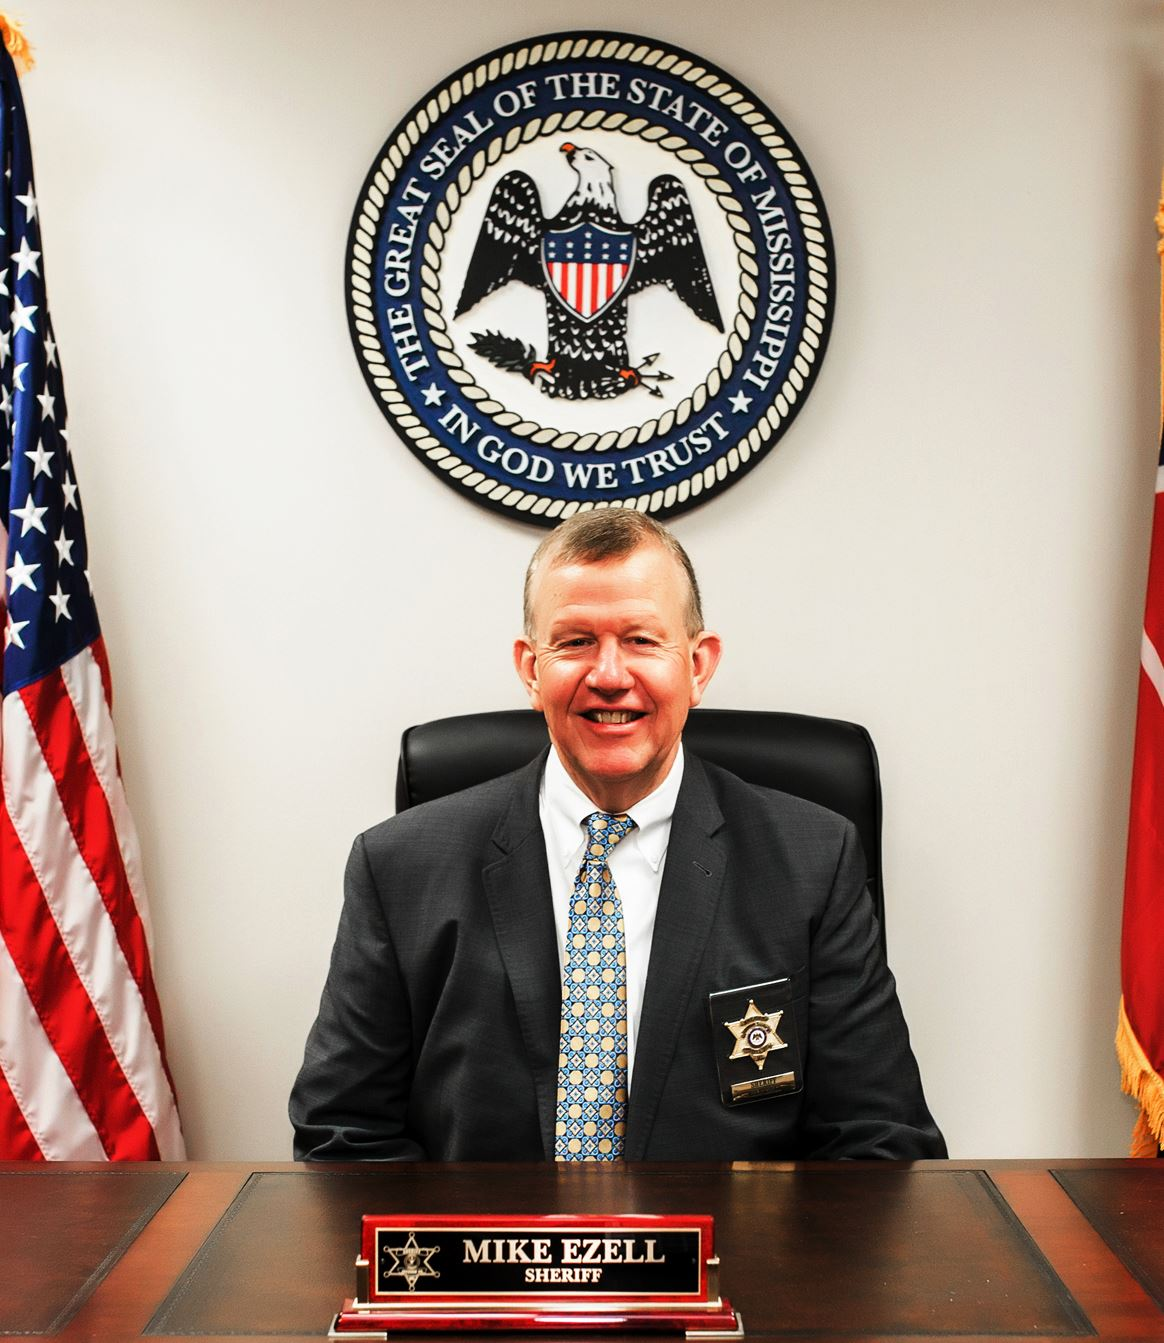 Sheriff Mike Ezell